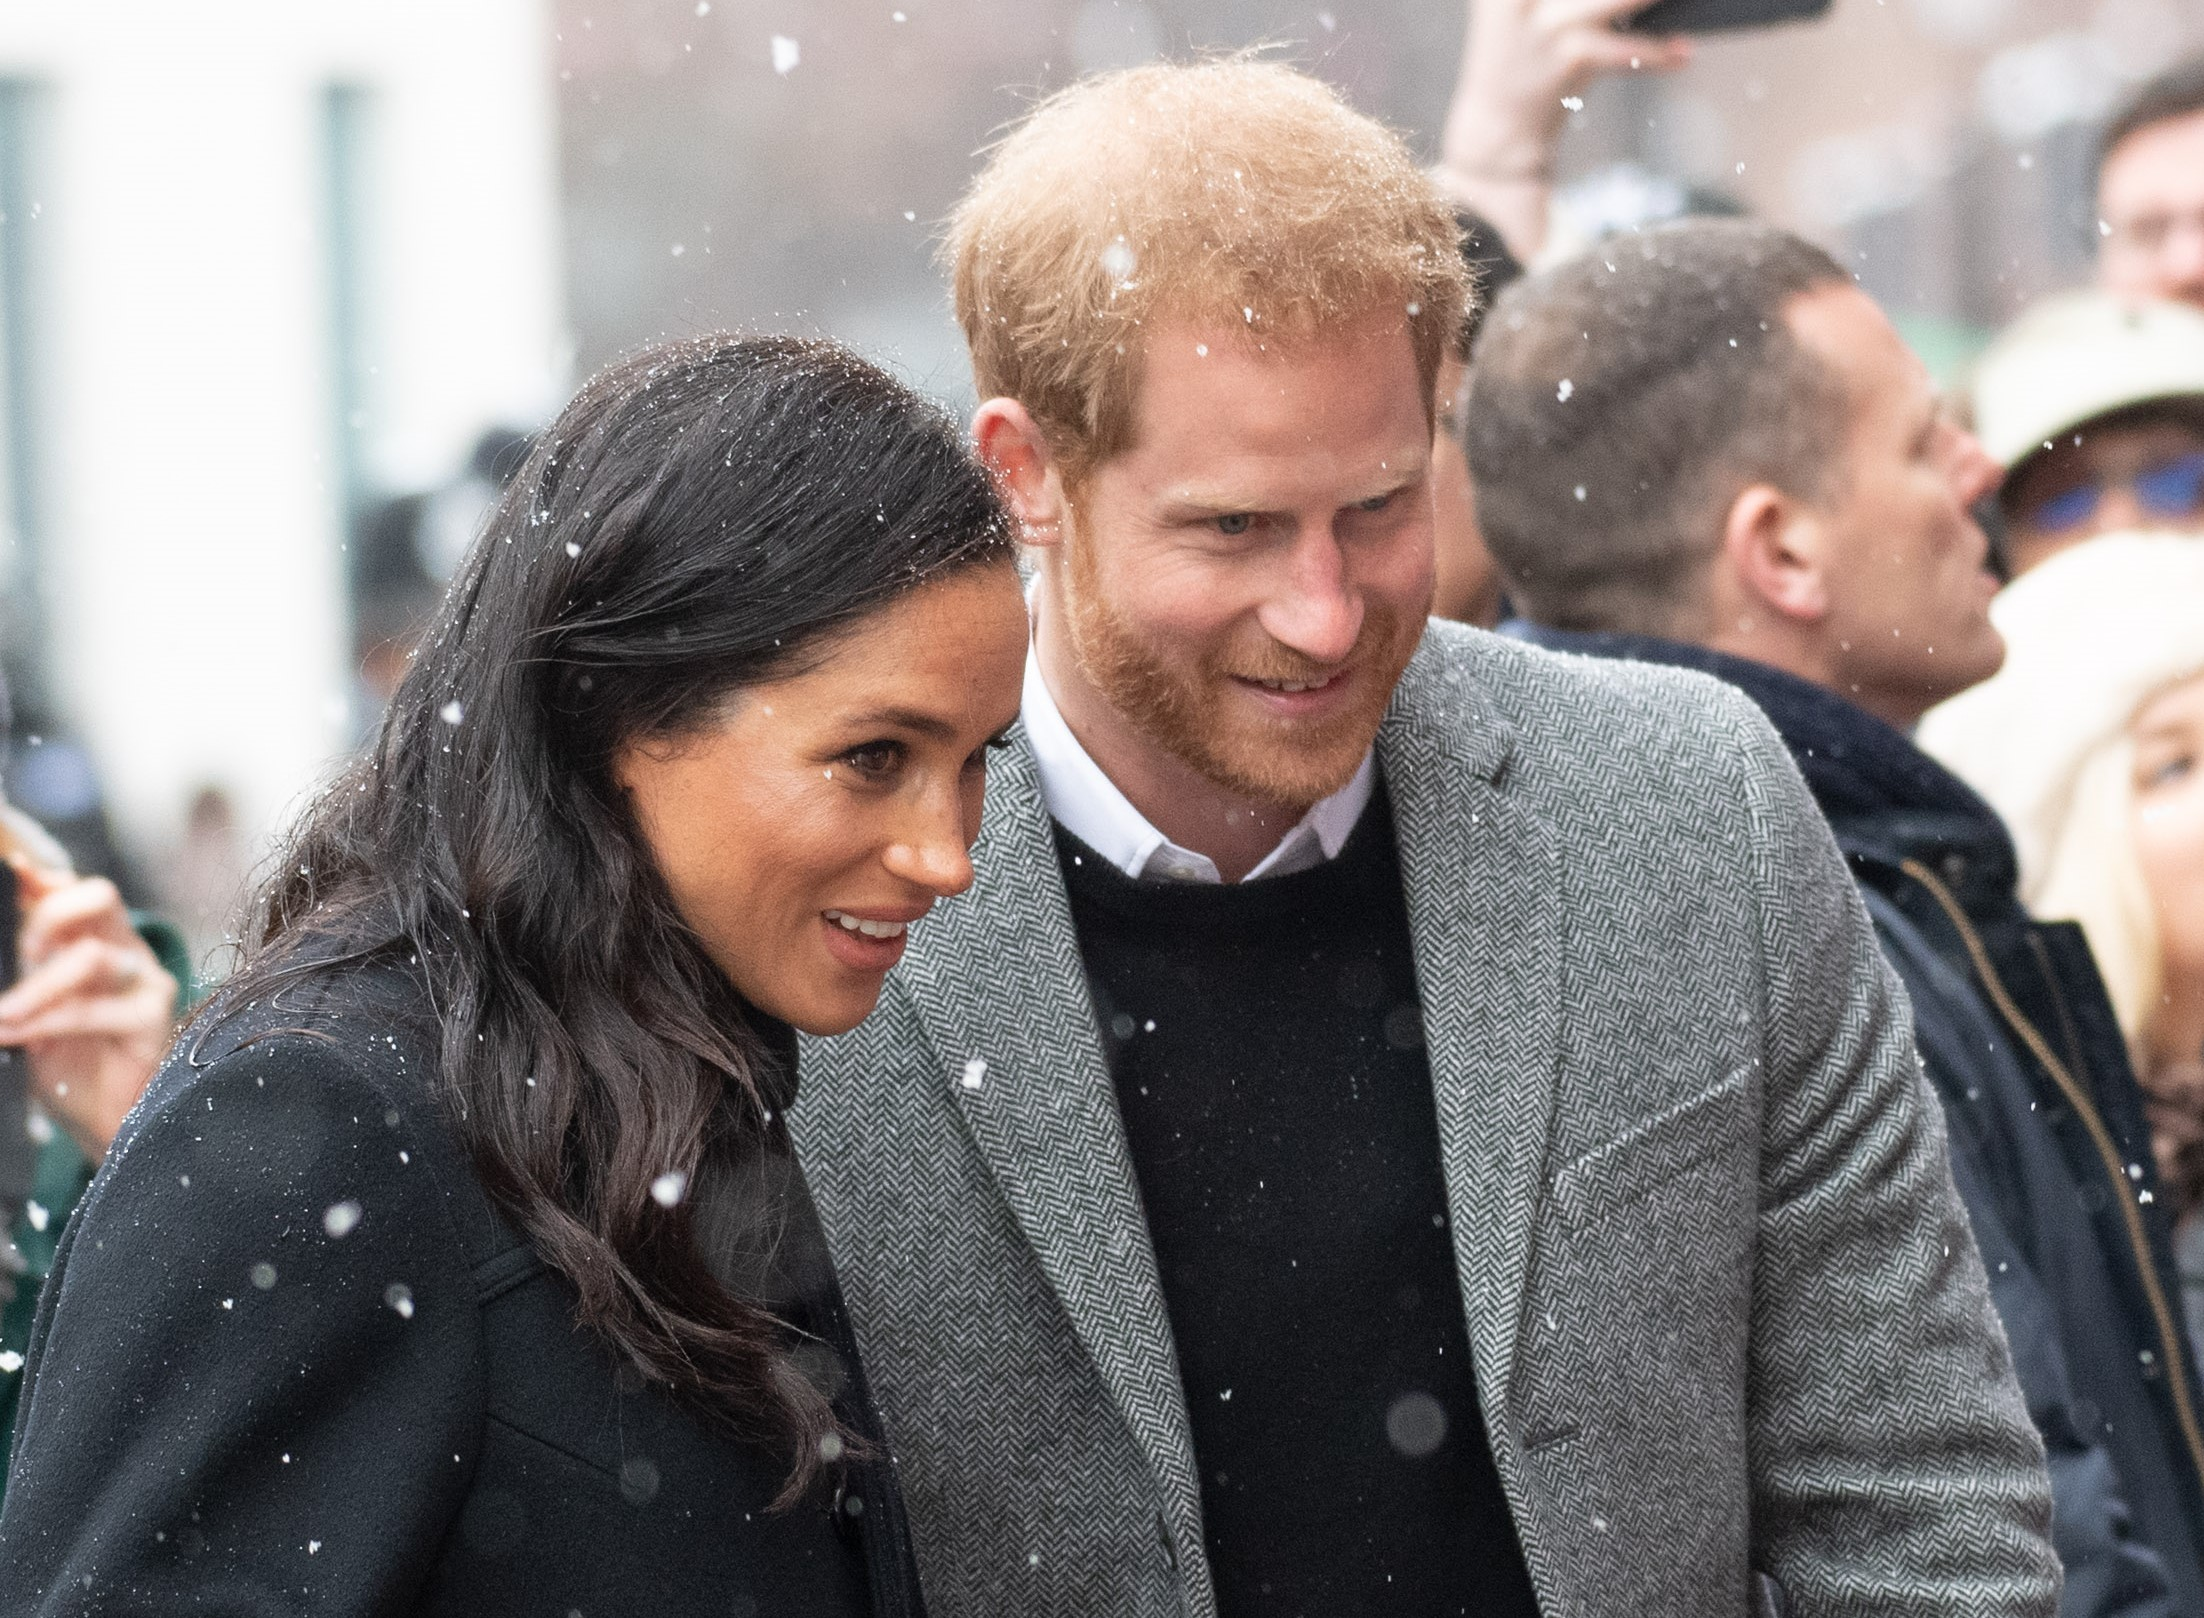 Palace blasts Meghan Markle and Prince Harry 'gender fluid' baby claims